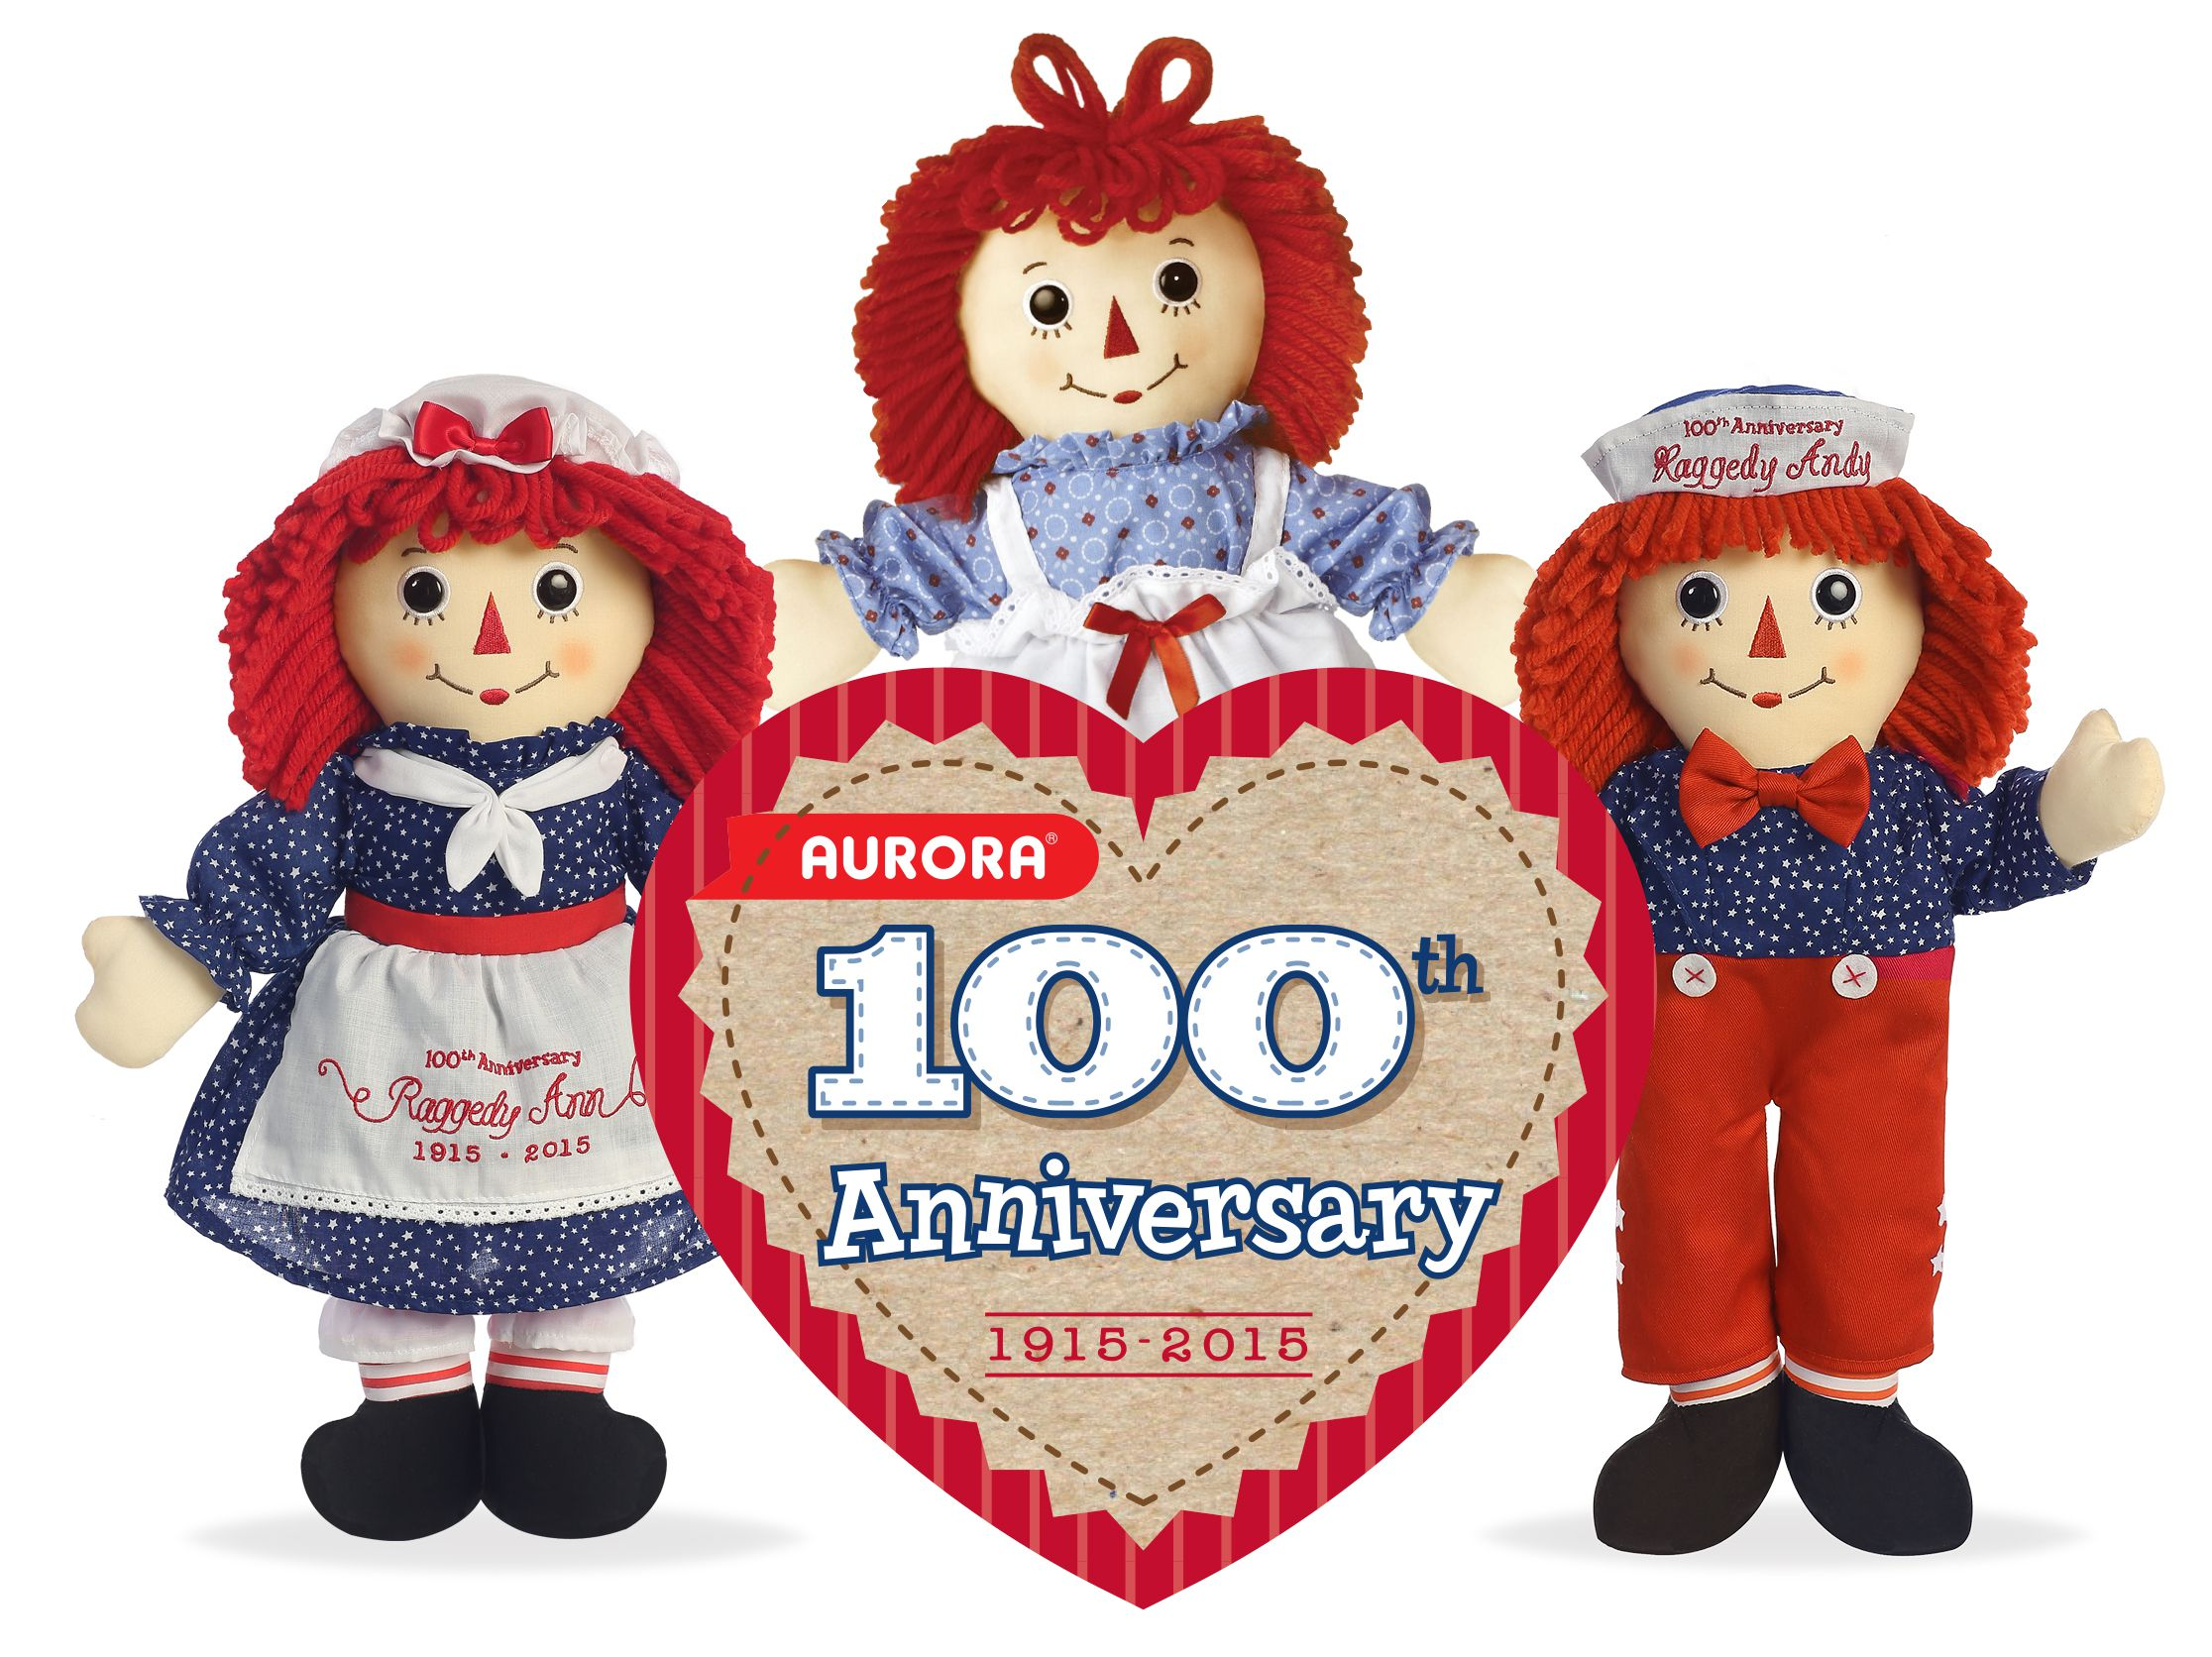 raggedy ann and andy dolls are 100 years old